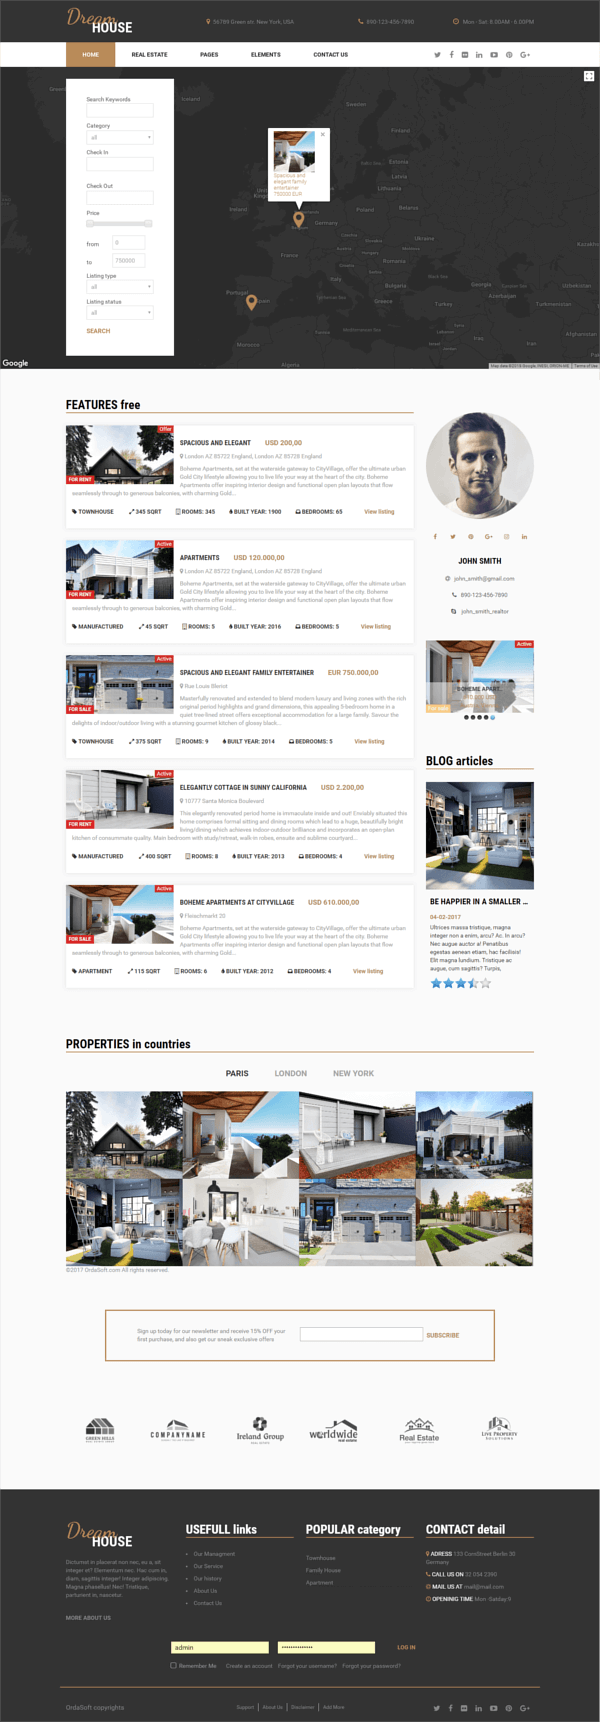 Free real estate Joomla template Dream House, full screen